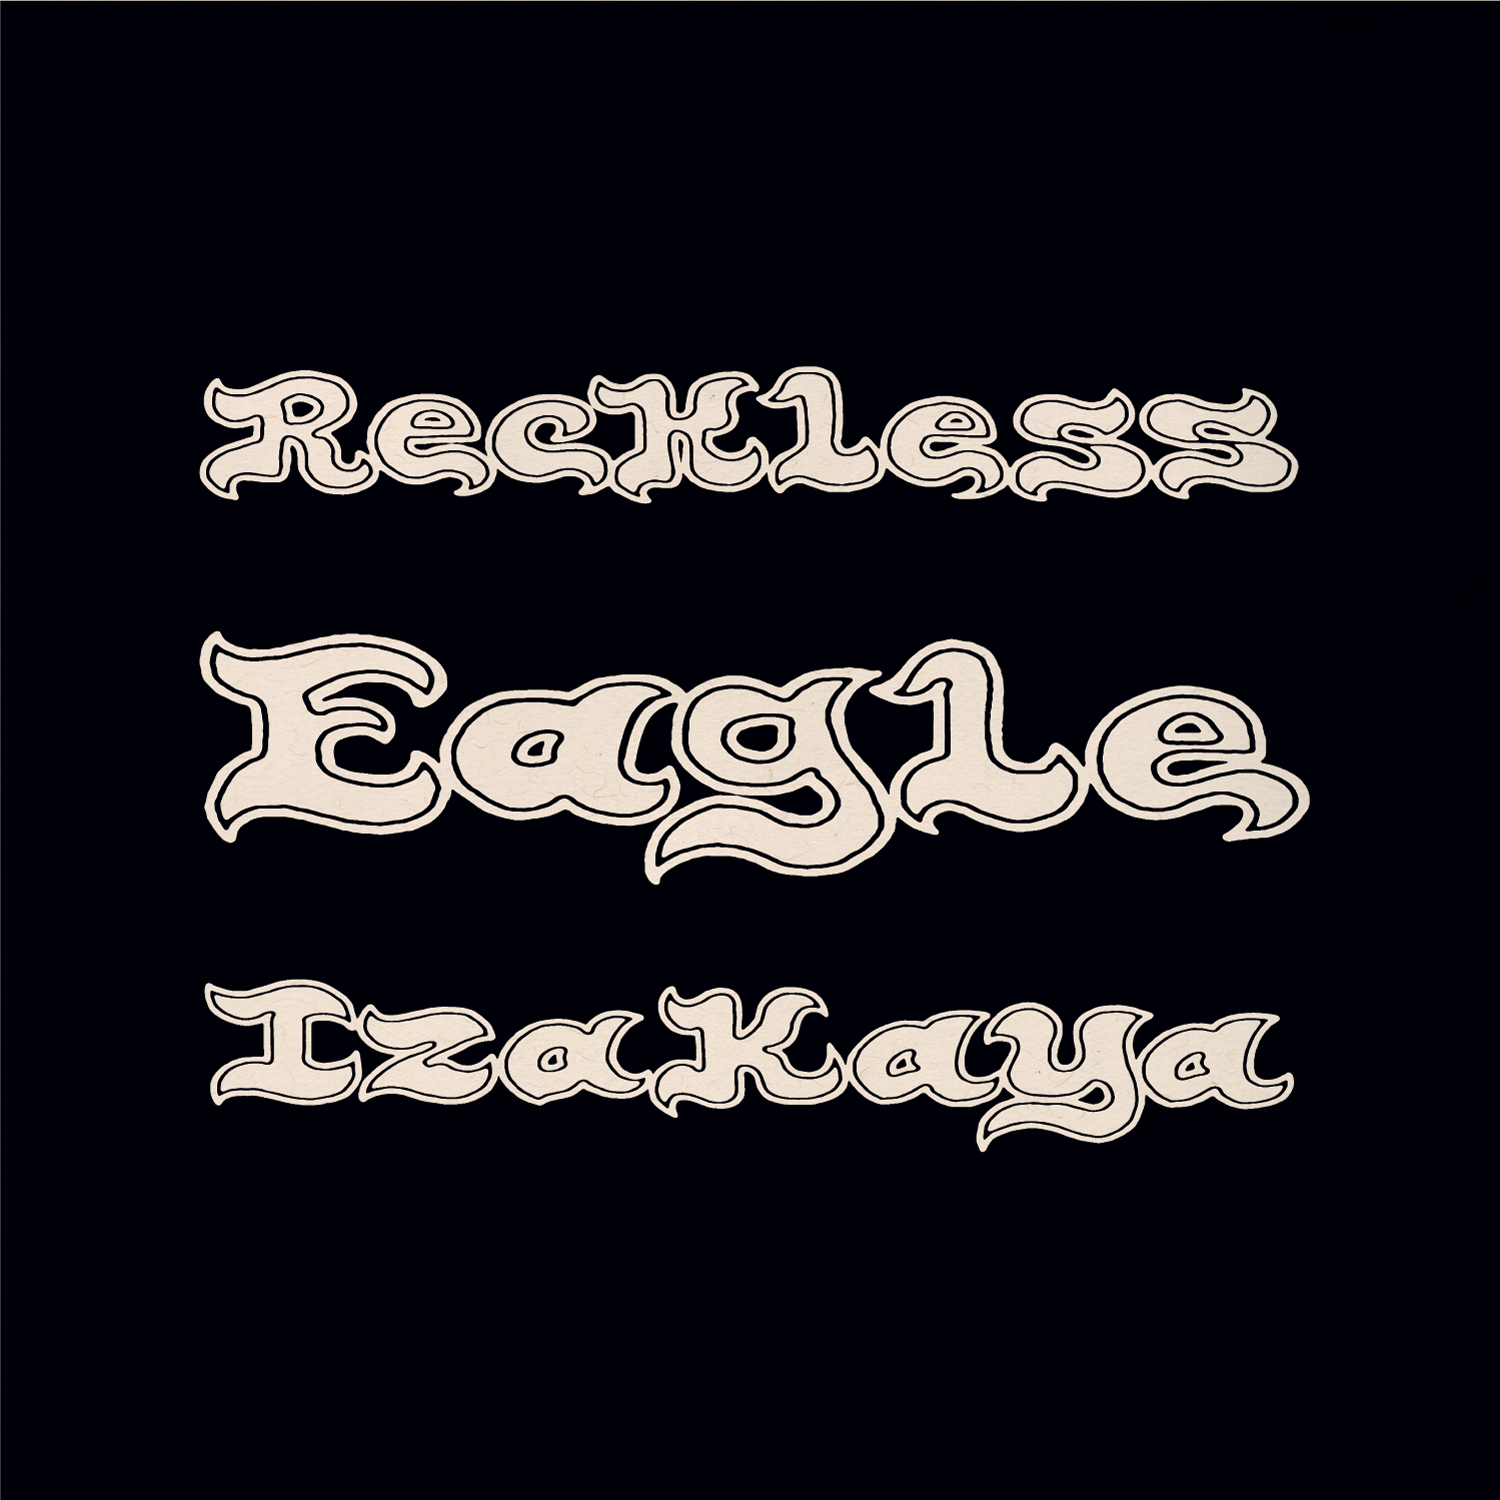 reckless-eagle-izakaya-8.png